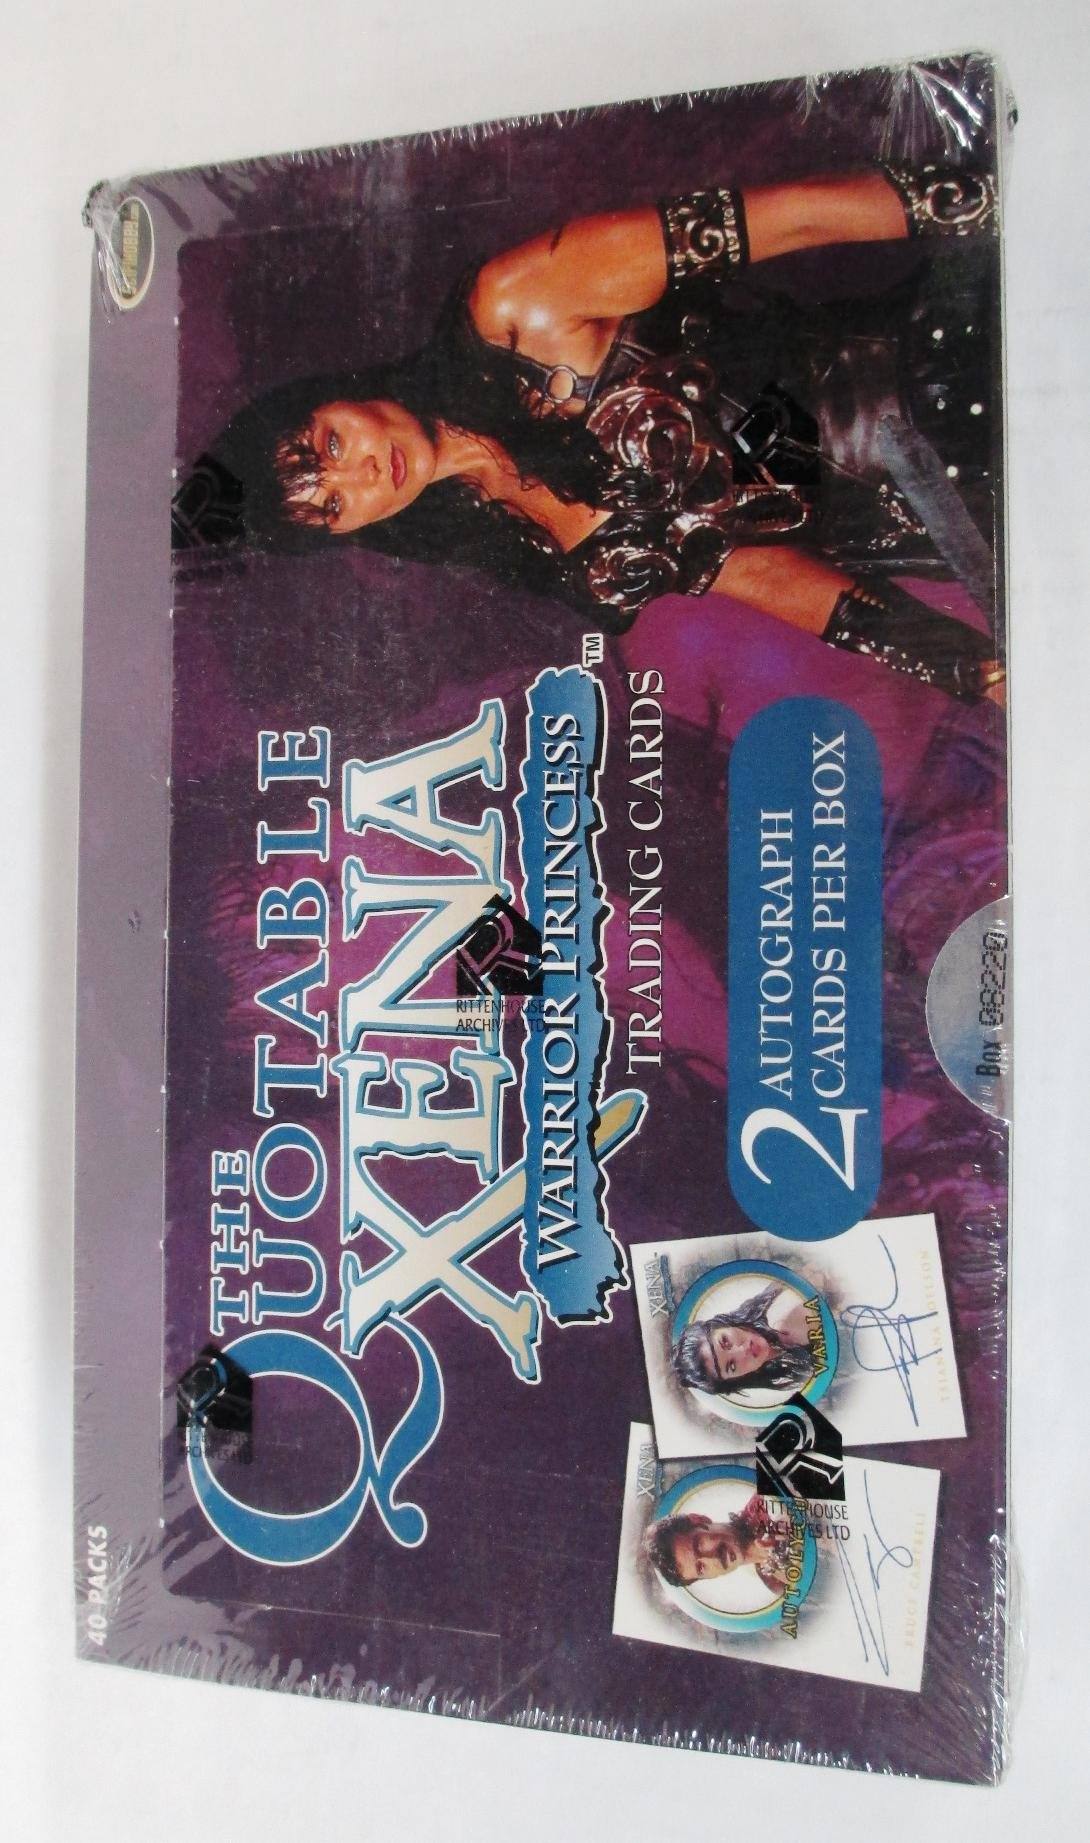 The Quotable Xena Warrior Princess Trading Cards Box Set - Includes 2 Autograph cards